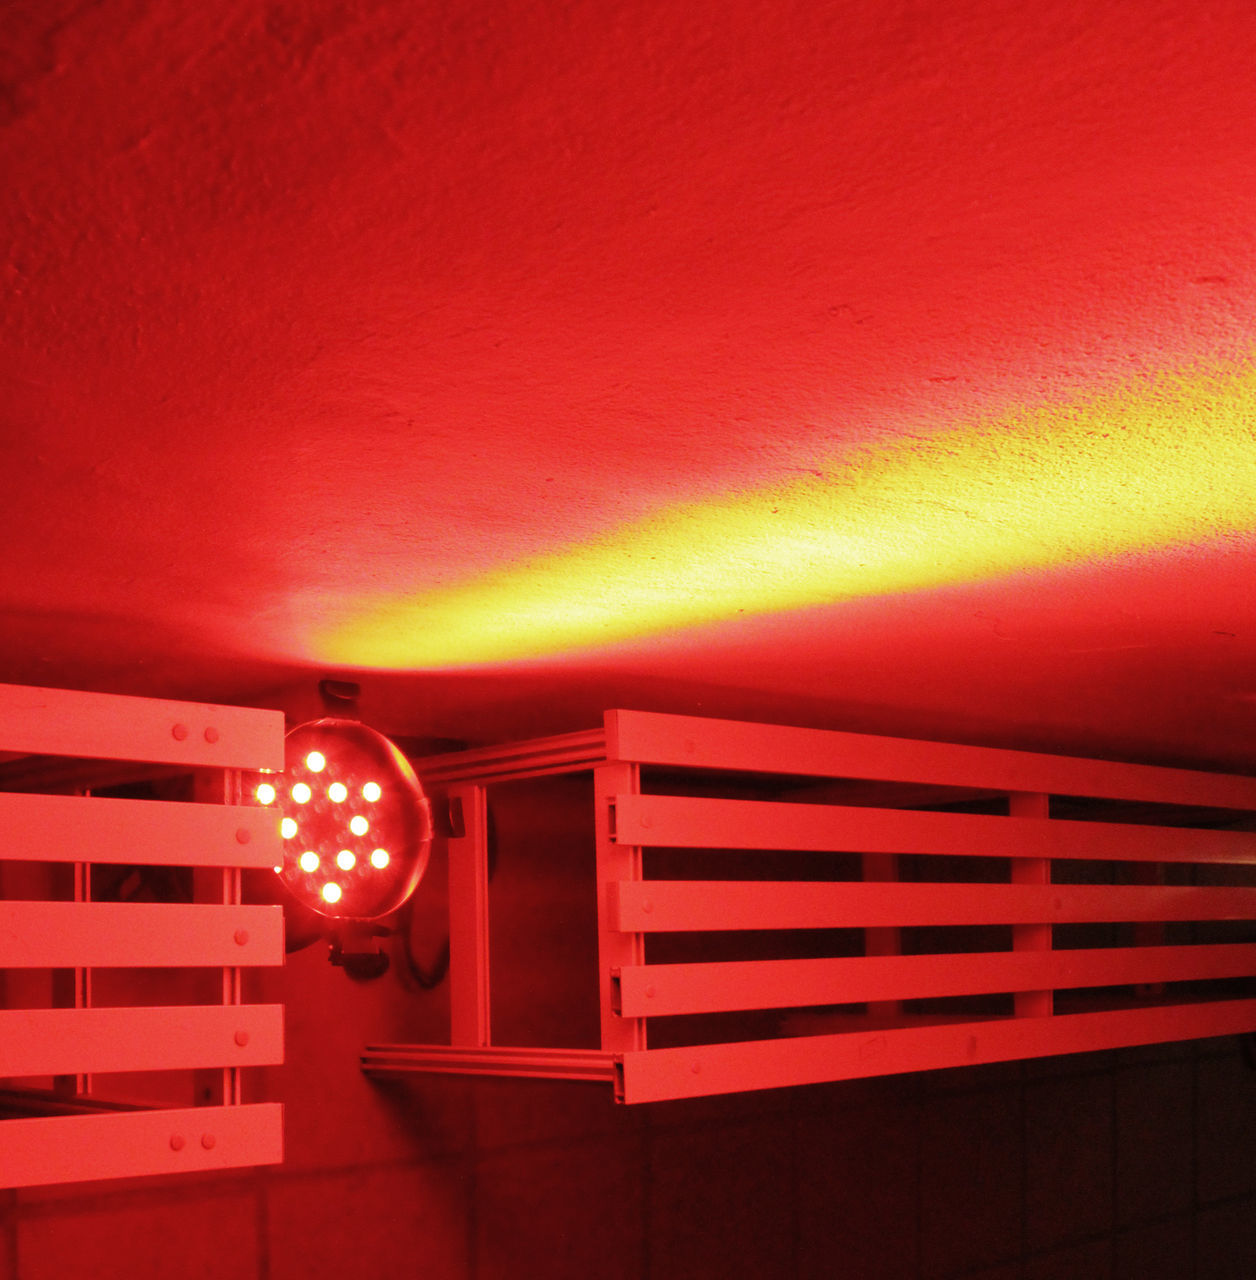 red, illuminated, lighting equipment, no people, indoors, built structure, architecture, technology, day